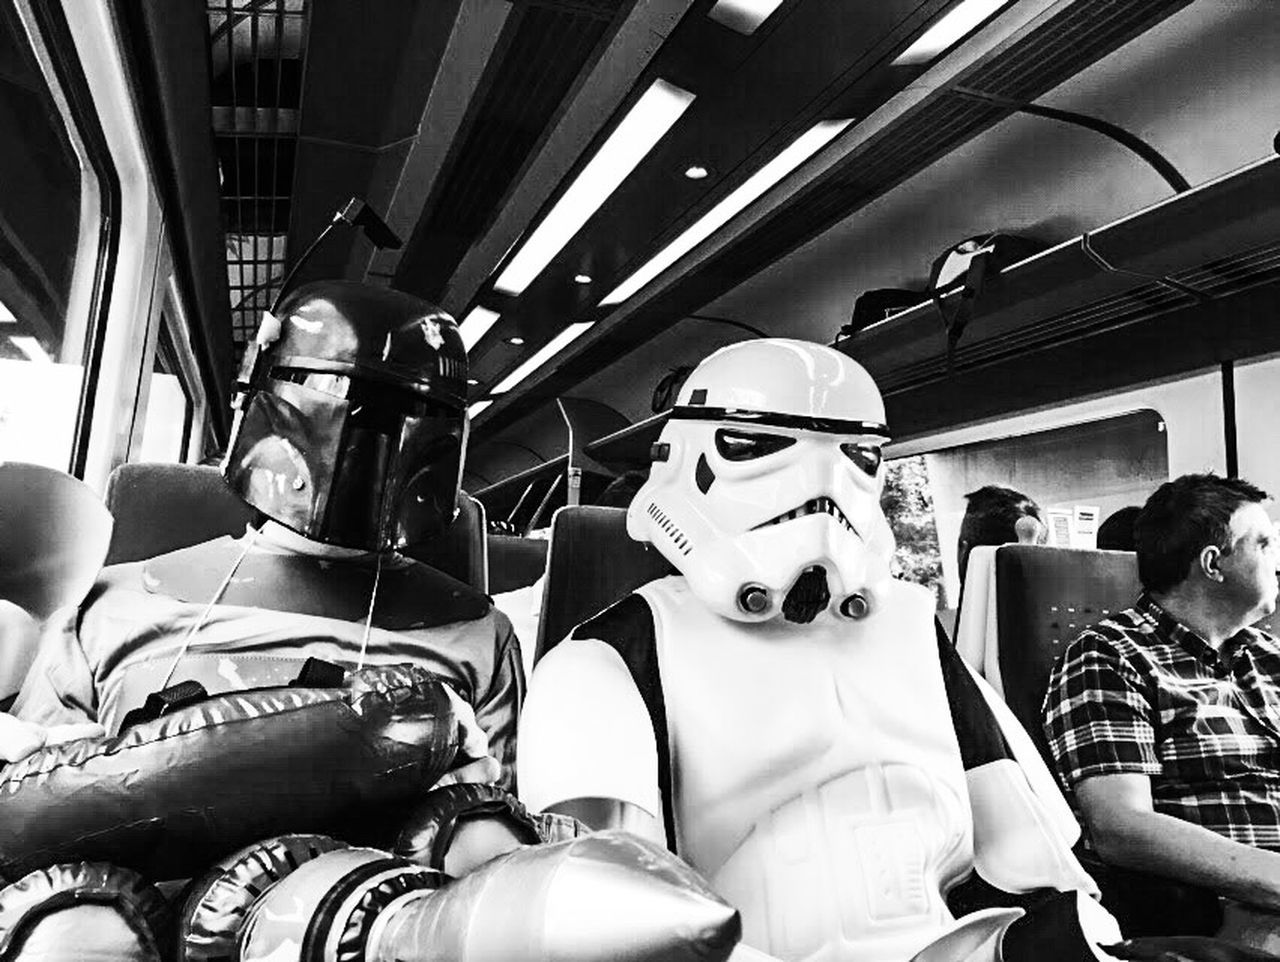 Train Troopers Vehicle Interior Transportation Mode Of Transport Vehicle Seat People Adult Men Friendship Indoors  Day EyeEmNewHere Train Science Fiction Scifi EyeEmNewHere EyeEmNewHere